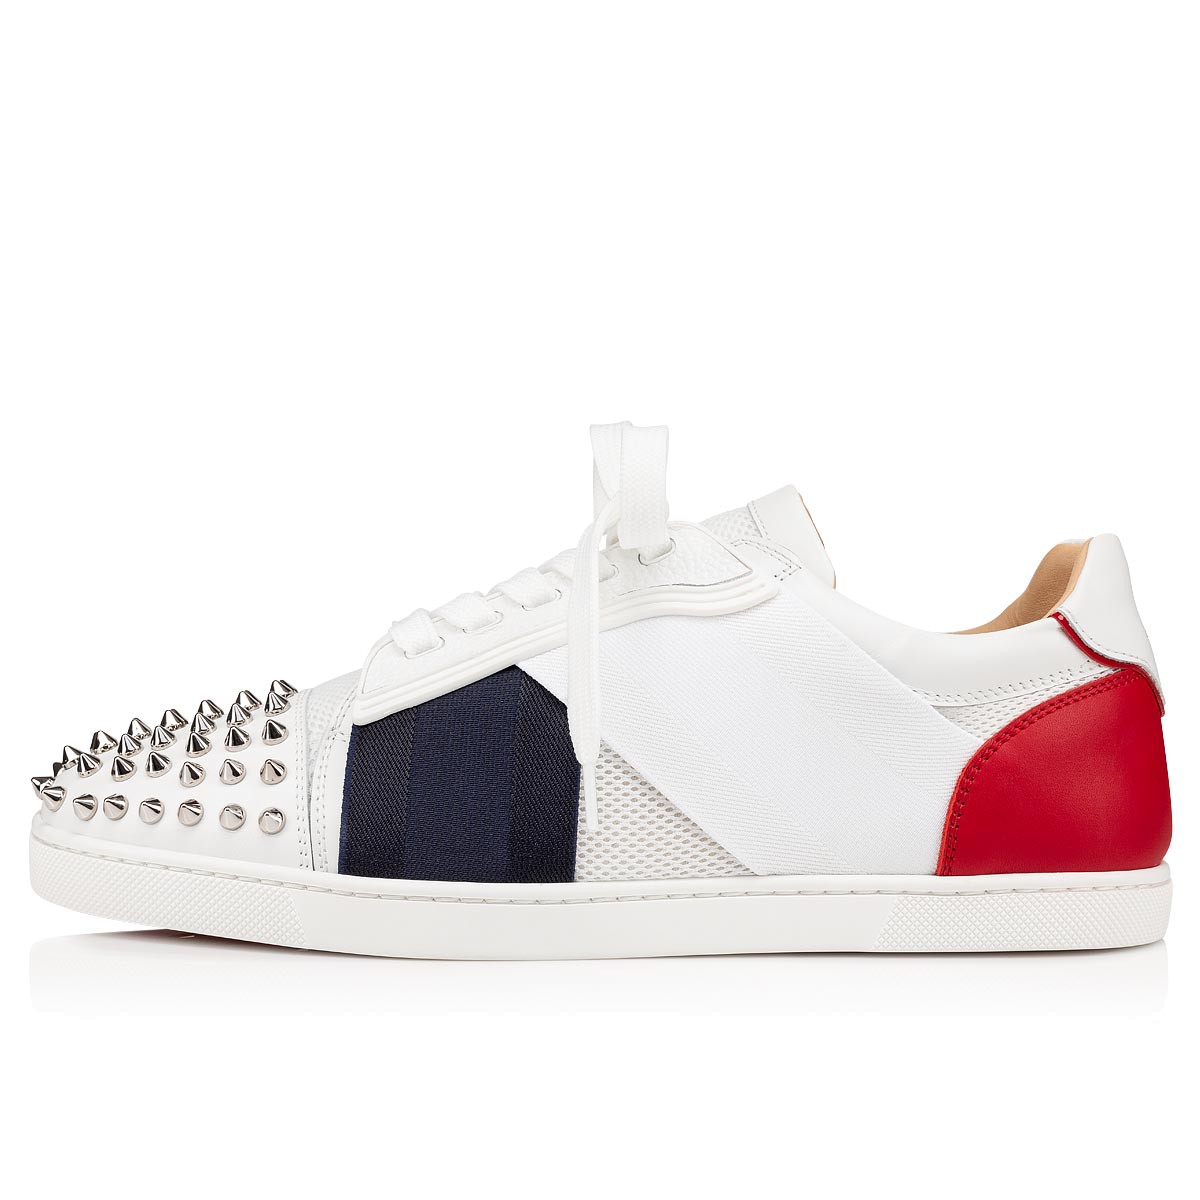 Shoes - Elastikid Spikes Donna Flat - Christian Louboutin